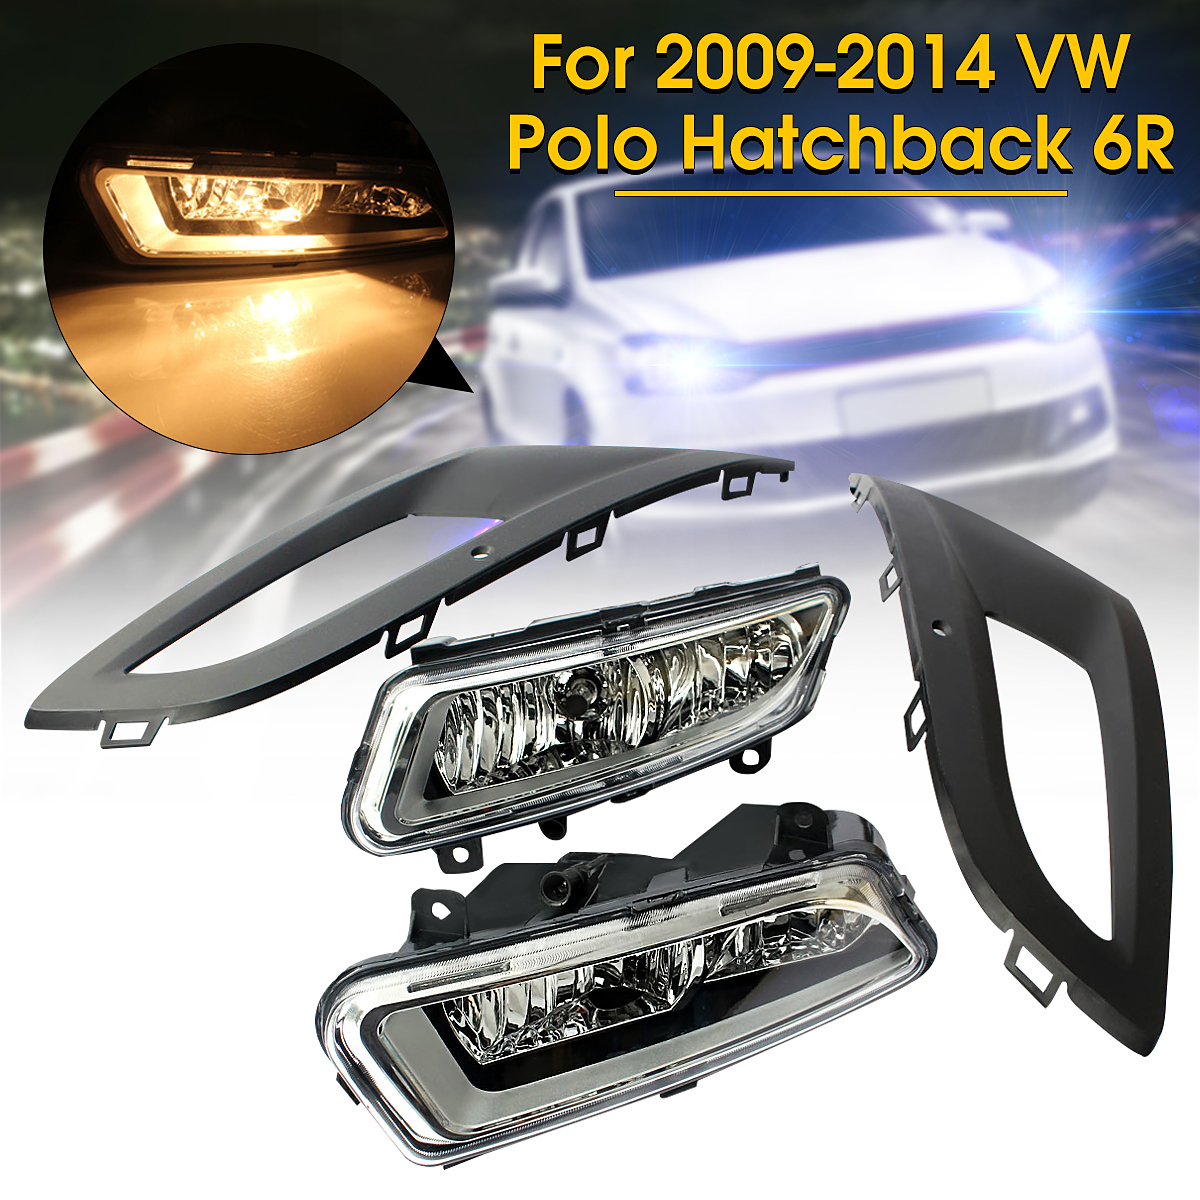 2Pcs Car Front Left Right Fog Light H11 Lights Bulbs Foglamps Bumper Grill Lower Grille Cover for VW Polo Hatchback 6R 2009-2014 front lower left right bumper fog light grille cover fog light lamp kit set for honda accord 4door 1998 2002